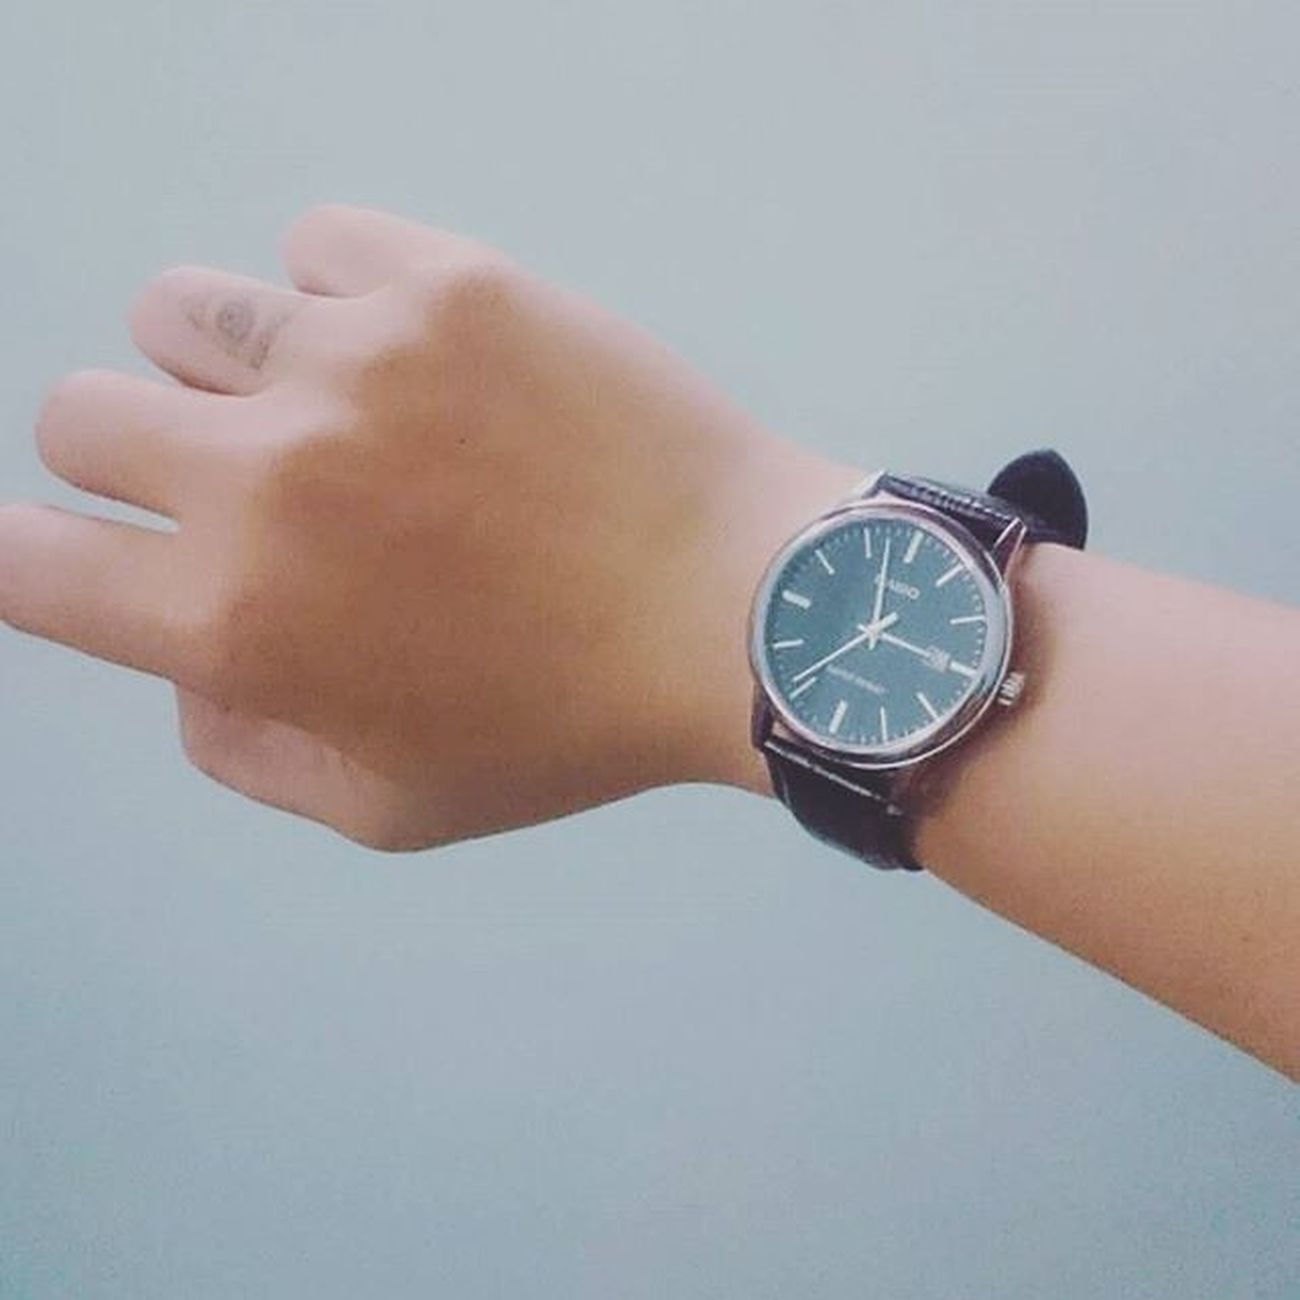 Casio Watch Waterrisistant Ootd Outfitoftheday Lookoftheday Fashion Fashiongram Style Love Beautiful CurrentlyWearing WIWT Whatiwore  Whatiworetoday Ootdshare Outfit Clothes WiW MyLook Fashionista Todayimwearing Instastyle Instafashion Outfitpost fashionpost todaysoutfit fashiondiaries